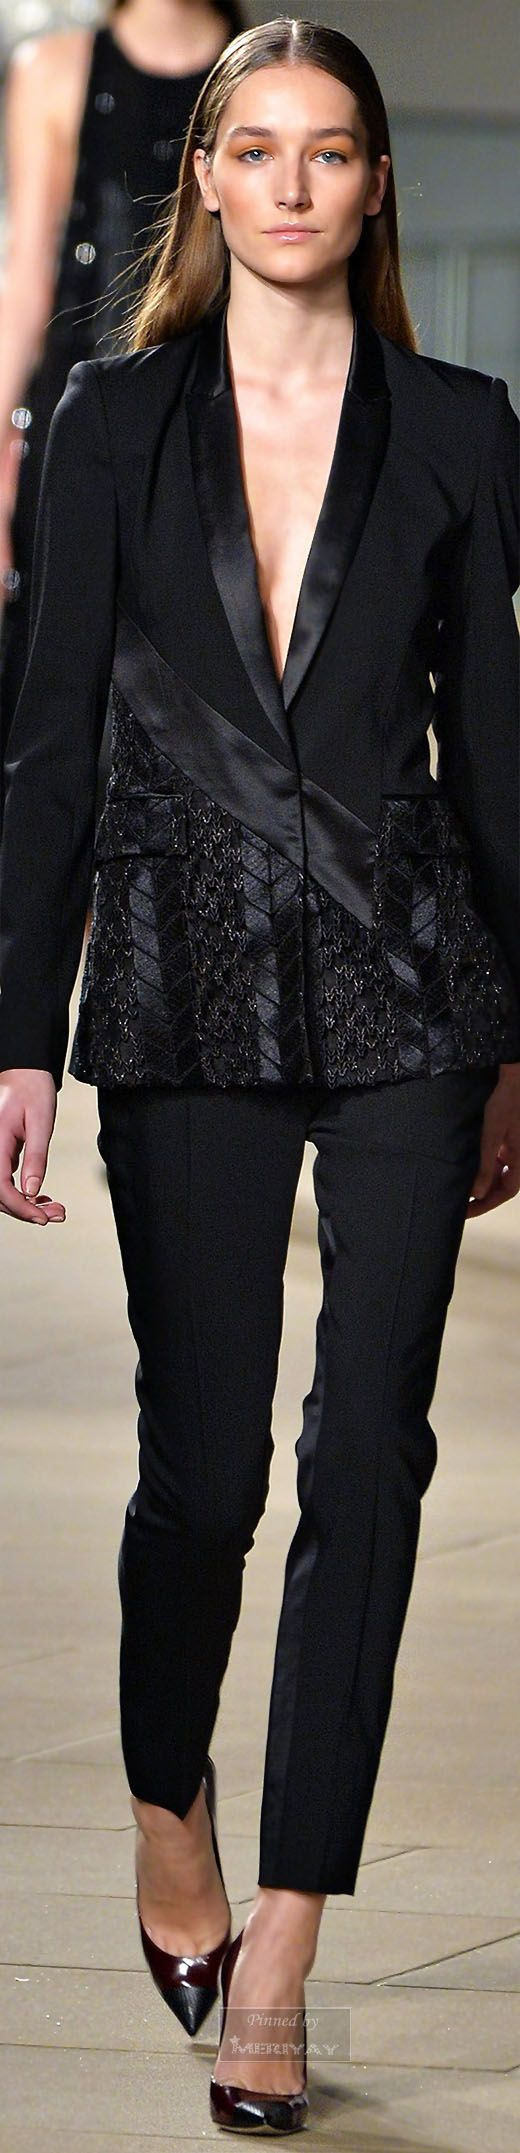 Prabal Gurung Fall 2015 | House of Beccaria~